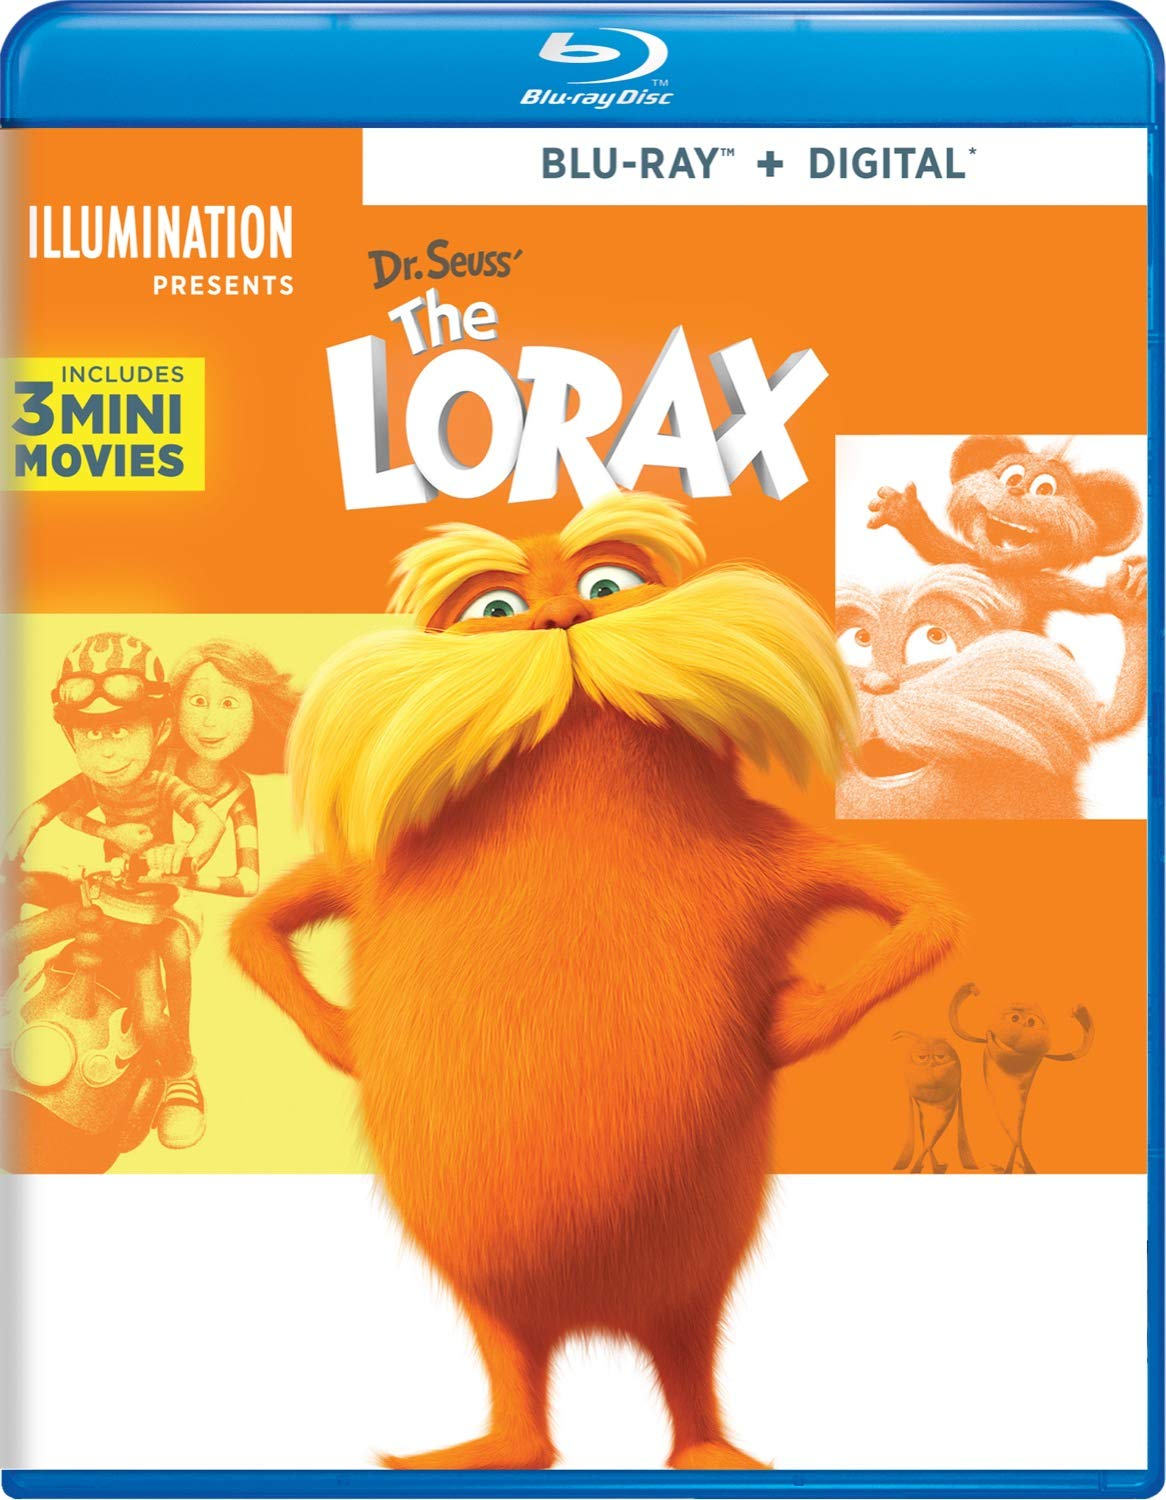 Dr Seuss The Lorax Edizione: Stati Uniti Italia Blu-ray: Amazon.es: Renaud, Chris, Balda, Kyle, DeVito, Danny, Efron, Zac, Helms, Ed, White, Betty, Swift, Taylor, Smith, Willow, Riggle, Rob, Lynn, Sherry: Cine y